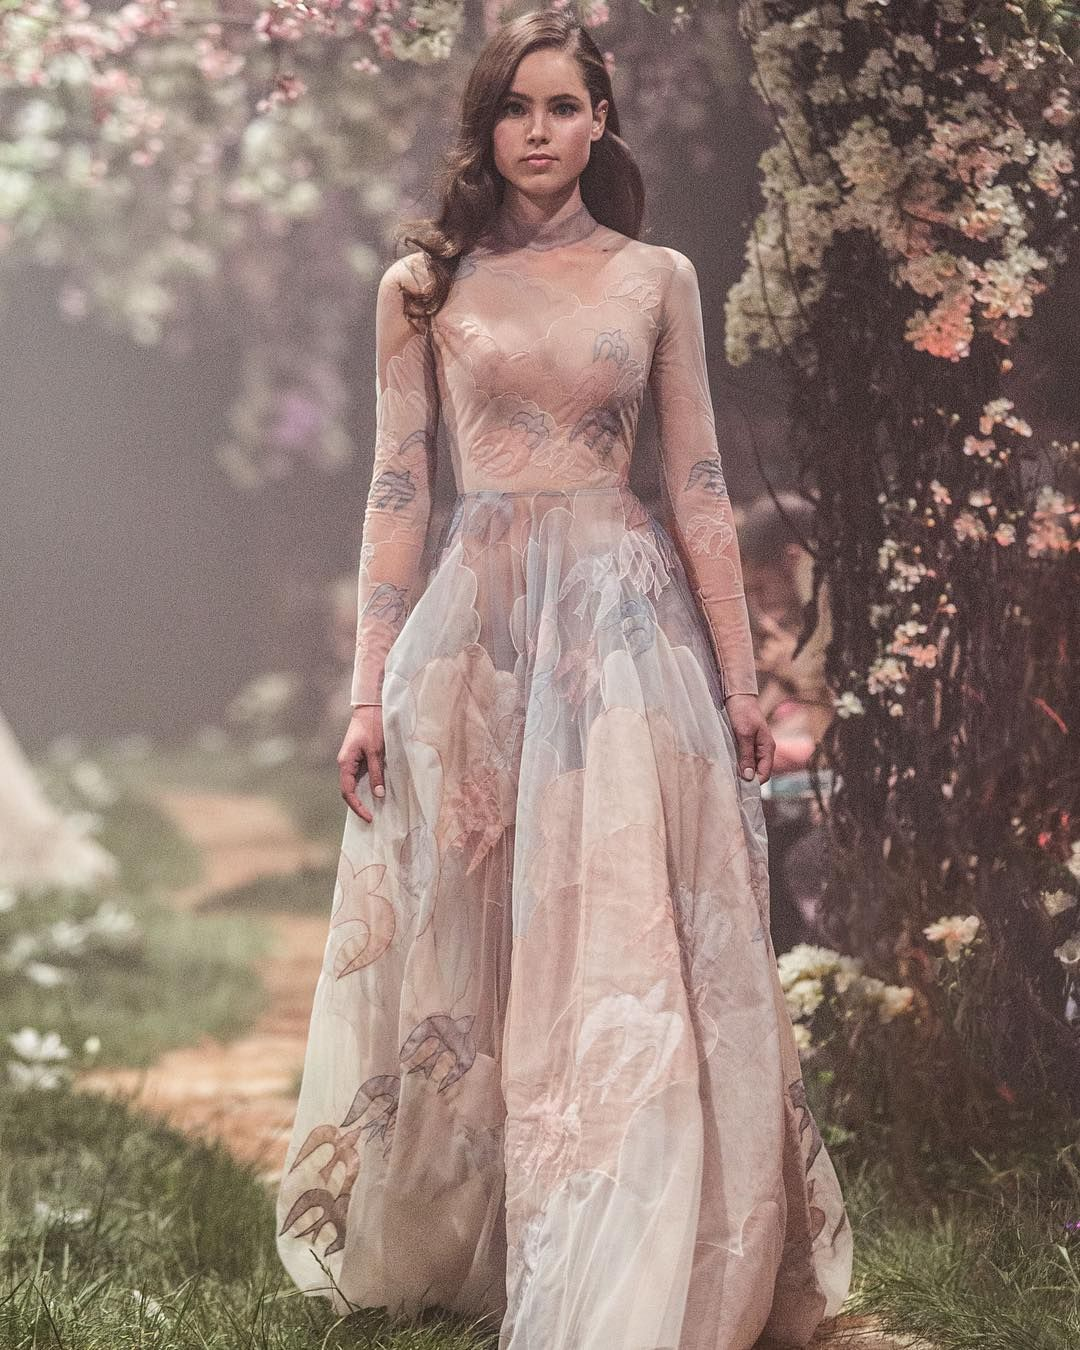 07c0217d149 Australian couture label Paolo Sebastian has launched a dazzling Disney  fairytale-inspired collection for Spring Summer 2018.